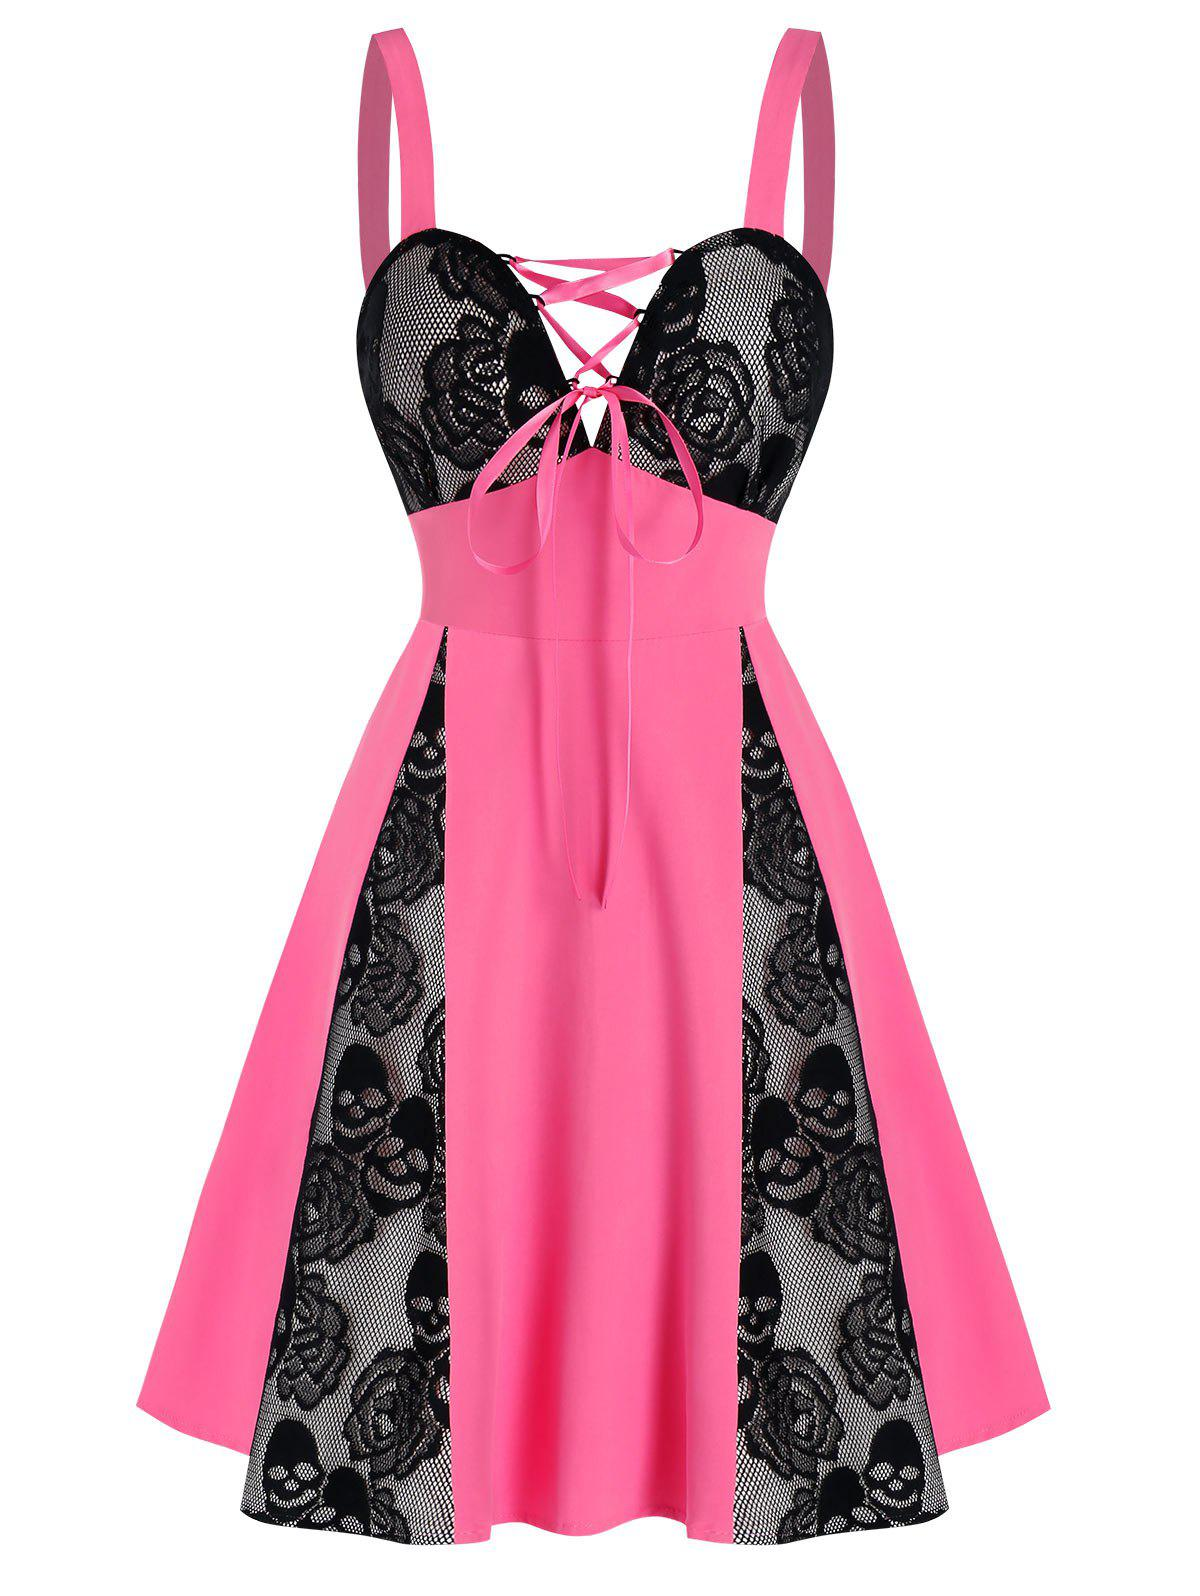 Skull Floral Lace Panel Colorblock Mini Dress - PINK S